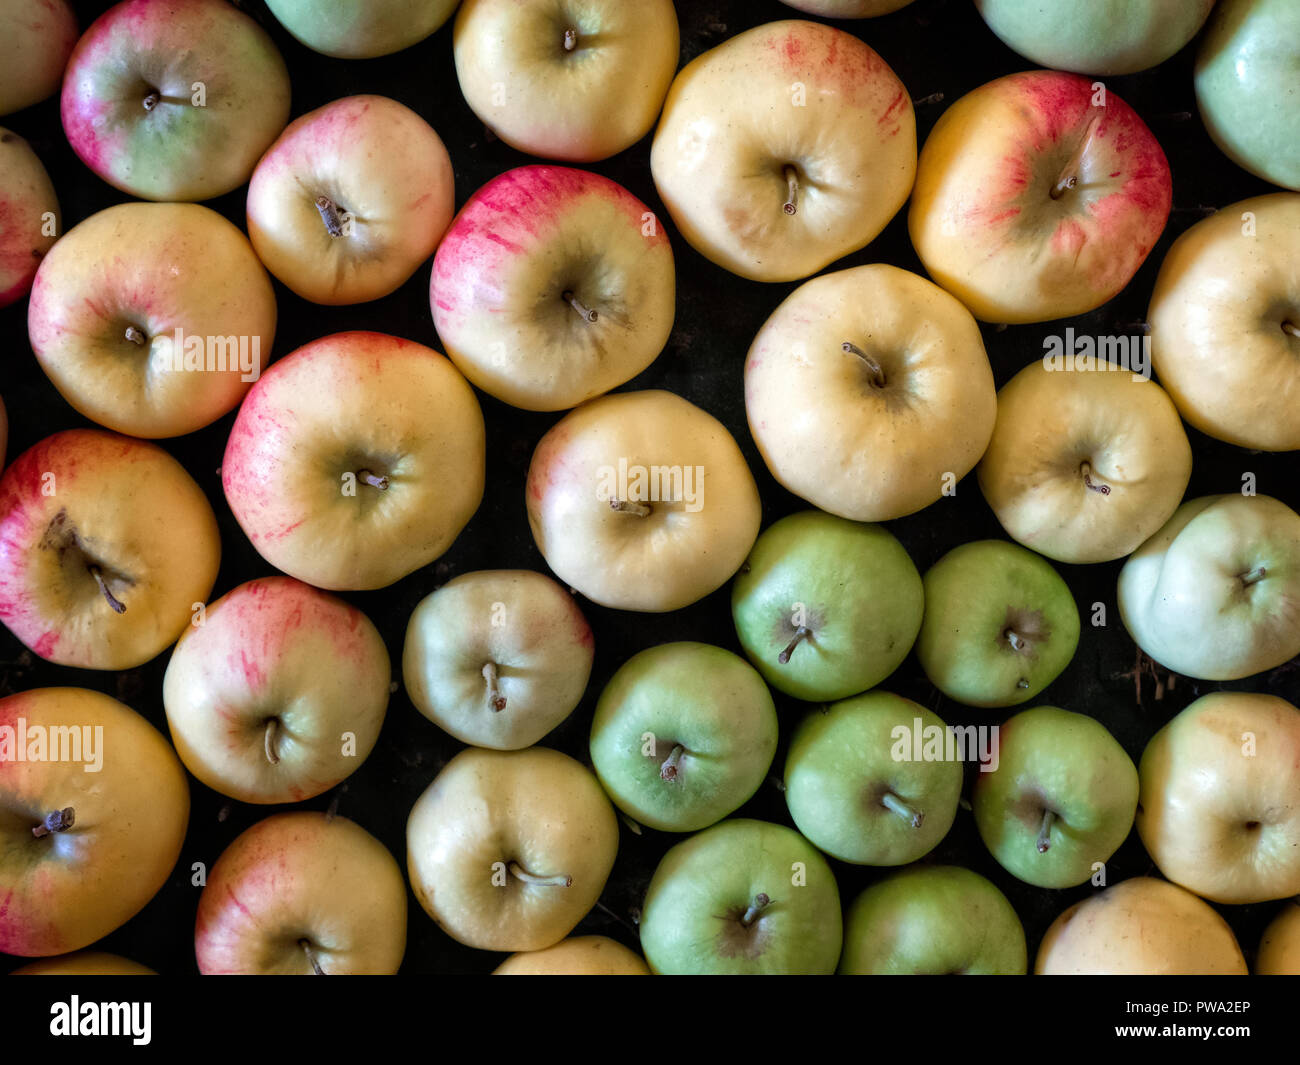 Apples on display at Brogdale Apple Festival  Faversham Kent 2018 - Stock Image